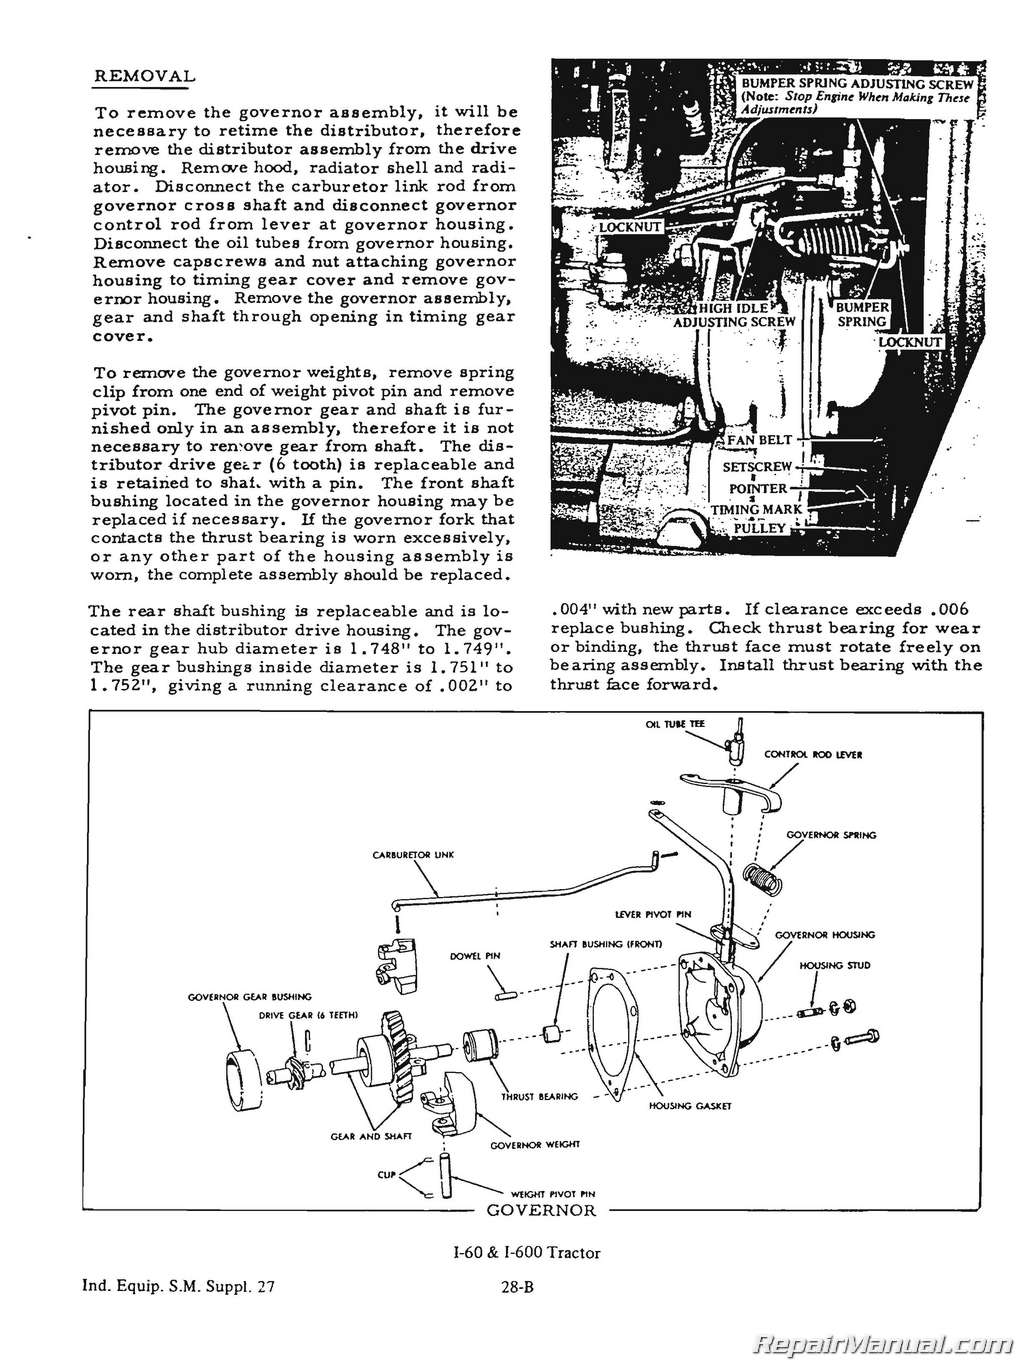 Allis Chalmers I60 I600 Tractor Service Manual